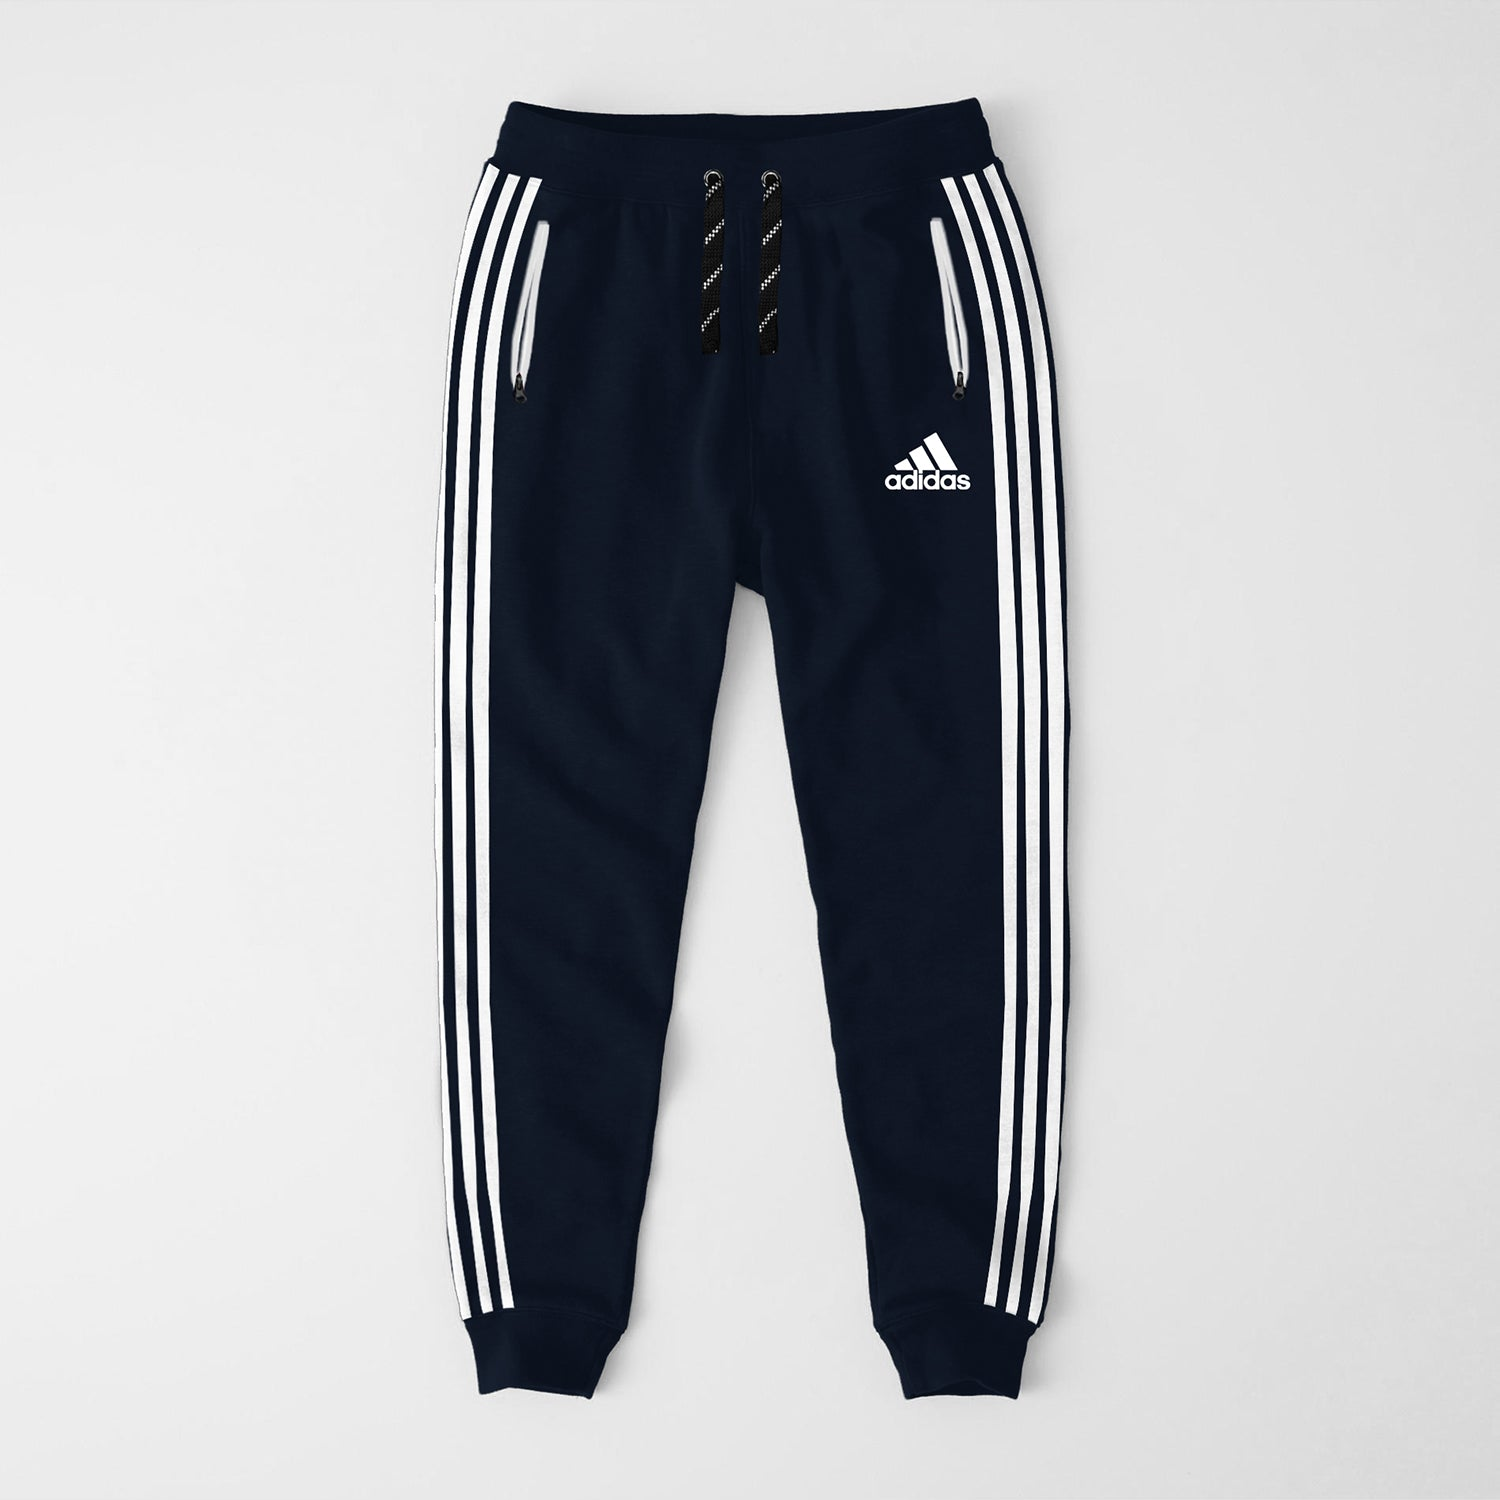 Adidas Single Jersey Slim Fit Jogger Trouser For Men-Dark Navy With White Stripes-NA8248